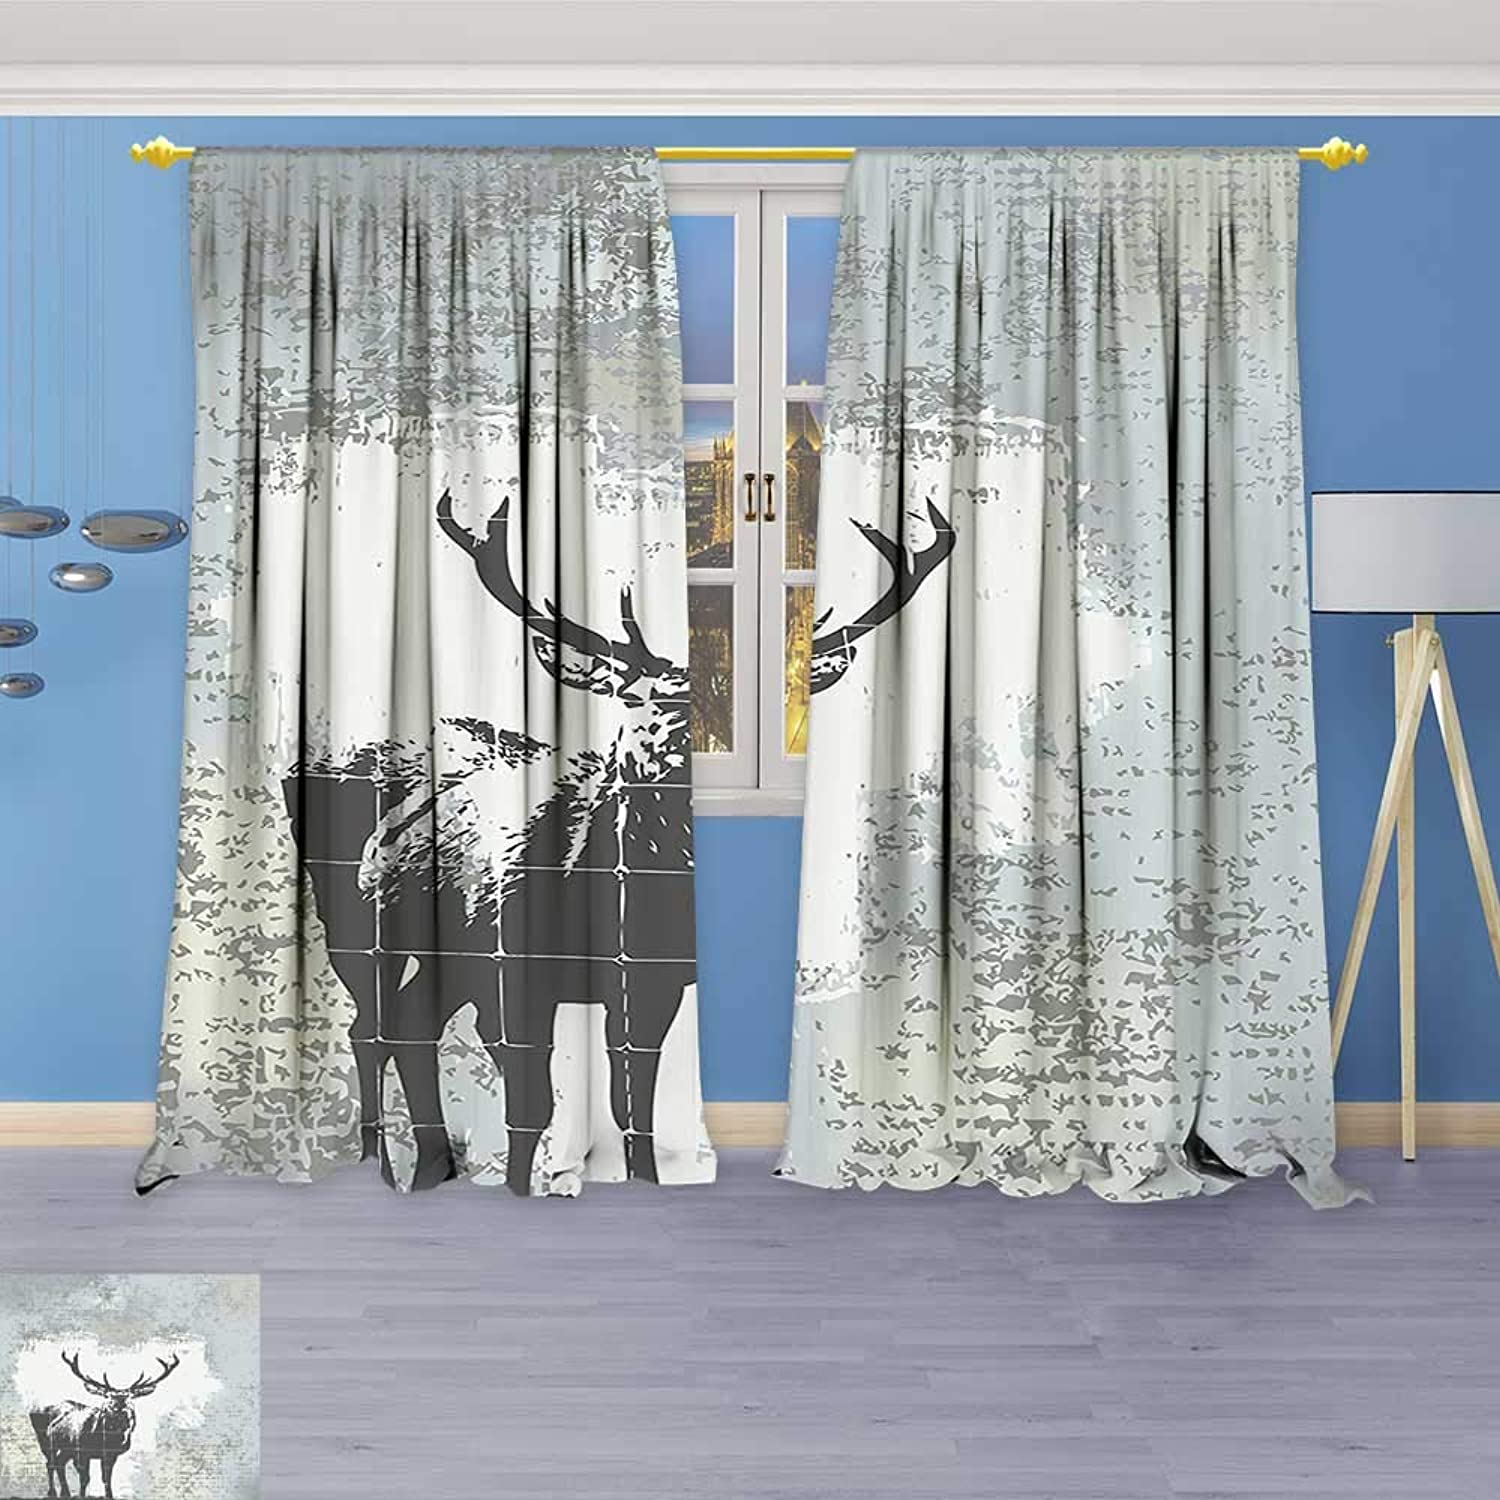 Philiphome Kids Room Planets Curtains (2 Panels),Standing Stag Silhouette Grunge Style Background Shadow Monochromic Illustration Grey Black Thermal Insulated Blackout Curtains with Star Prints